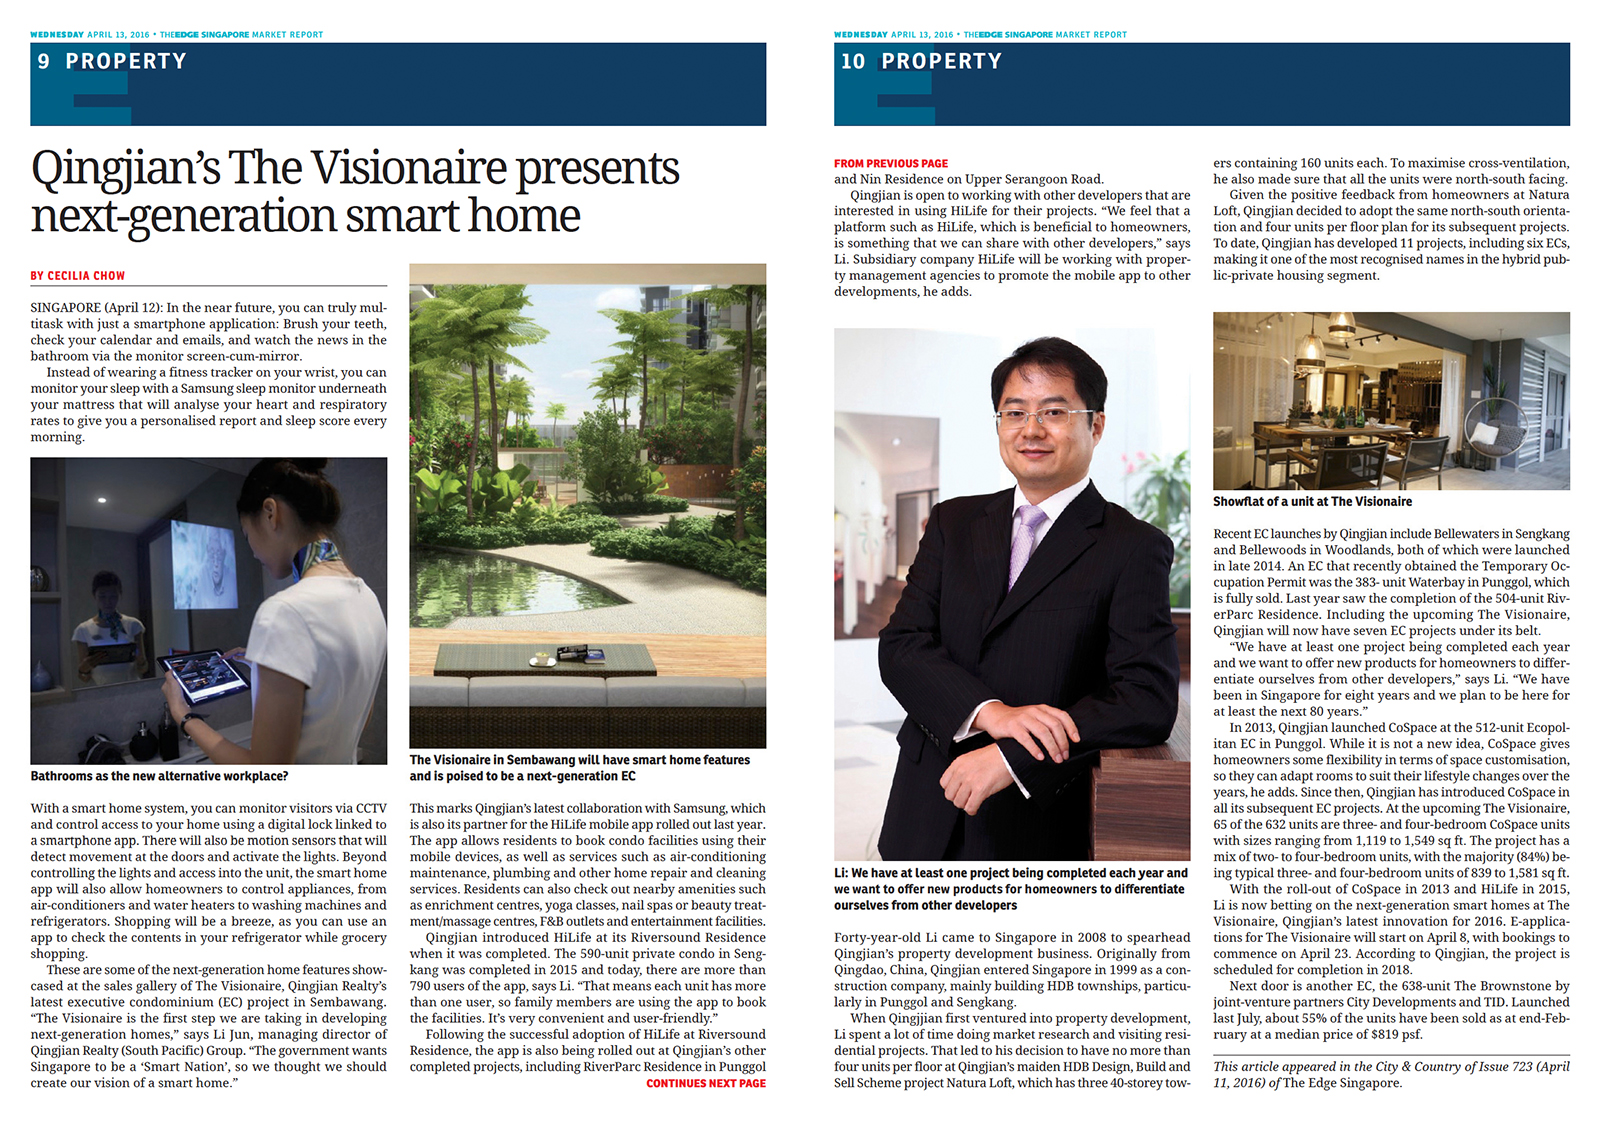 Article 2 Qingjian The Visionaire Presents Next Generation Smart Home